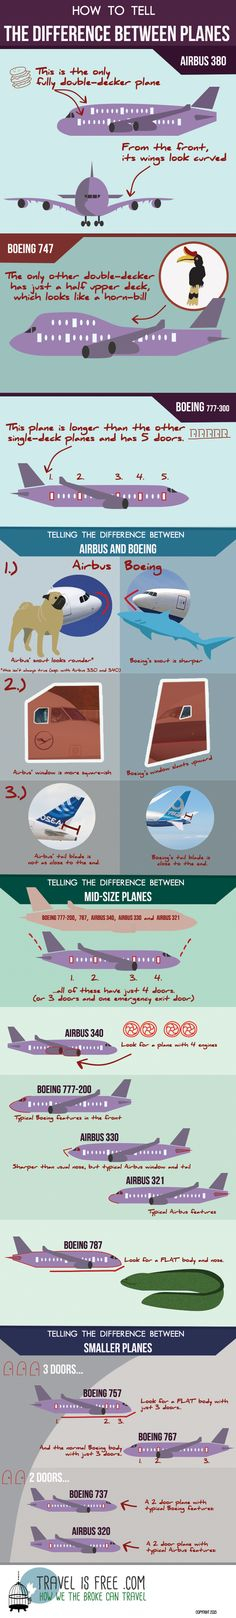 how to tell the difference between planes - boeing v airbus